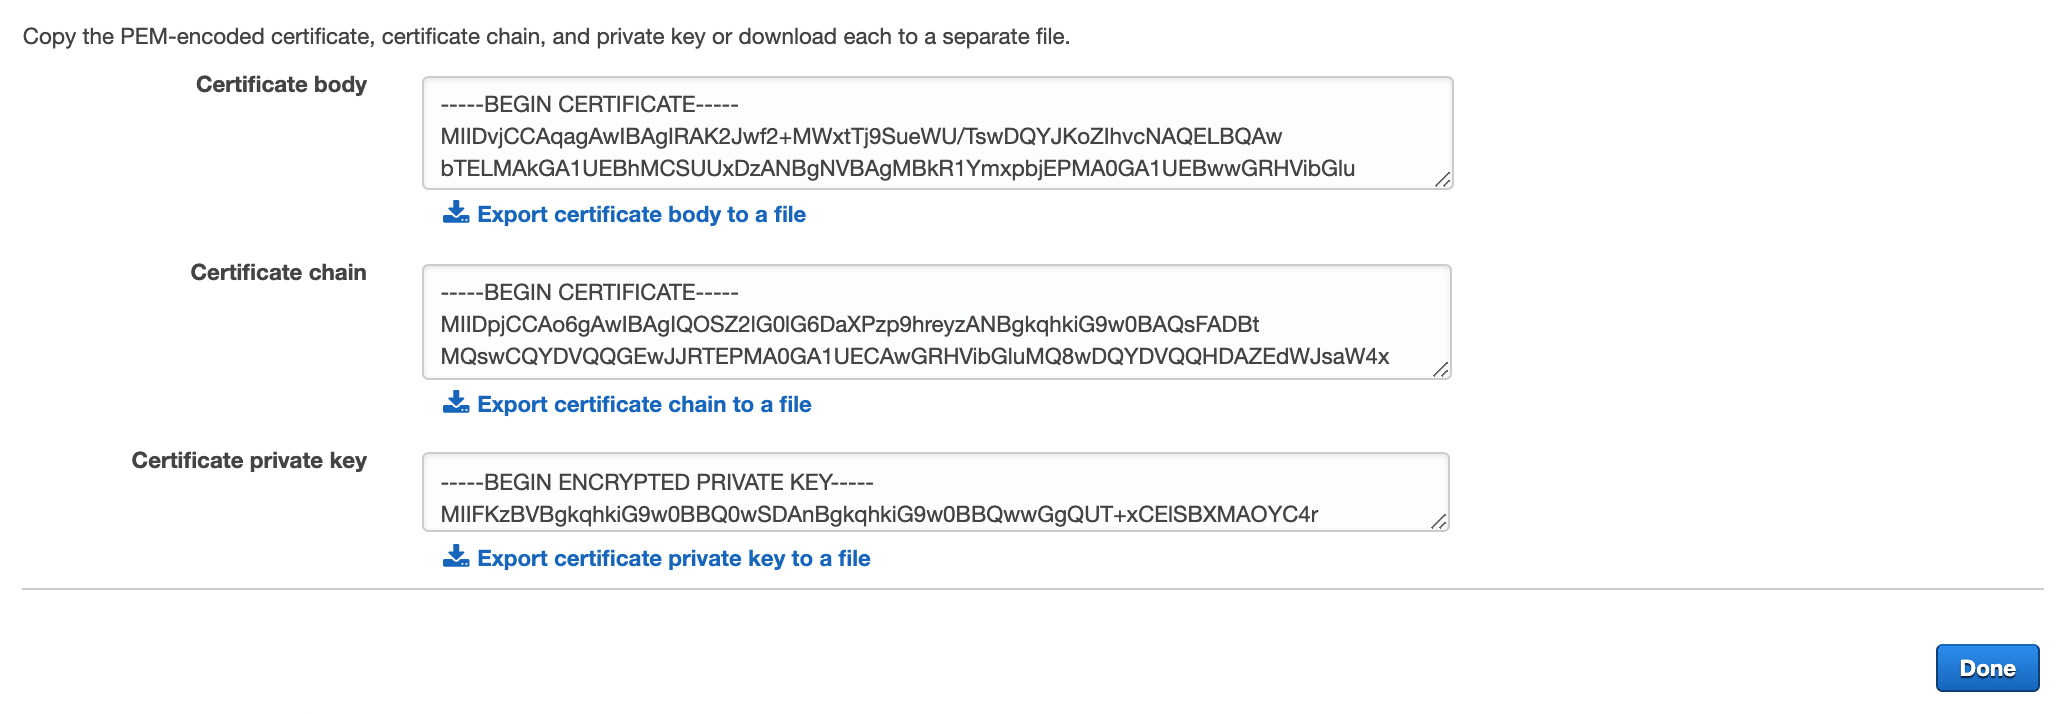 Figure 9: Get the PEM-encoded certificate, certificate chain, and private key